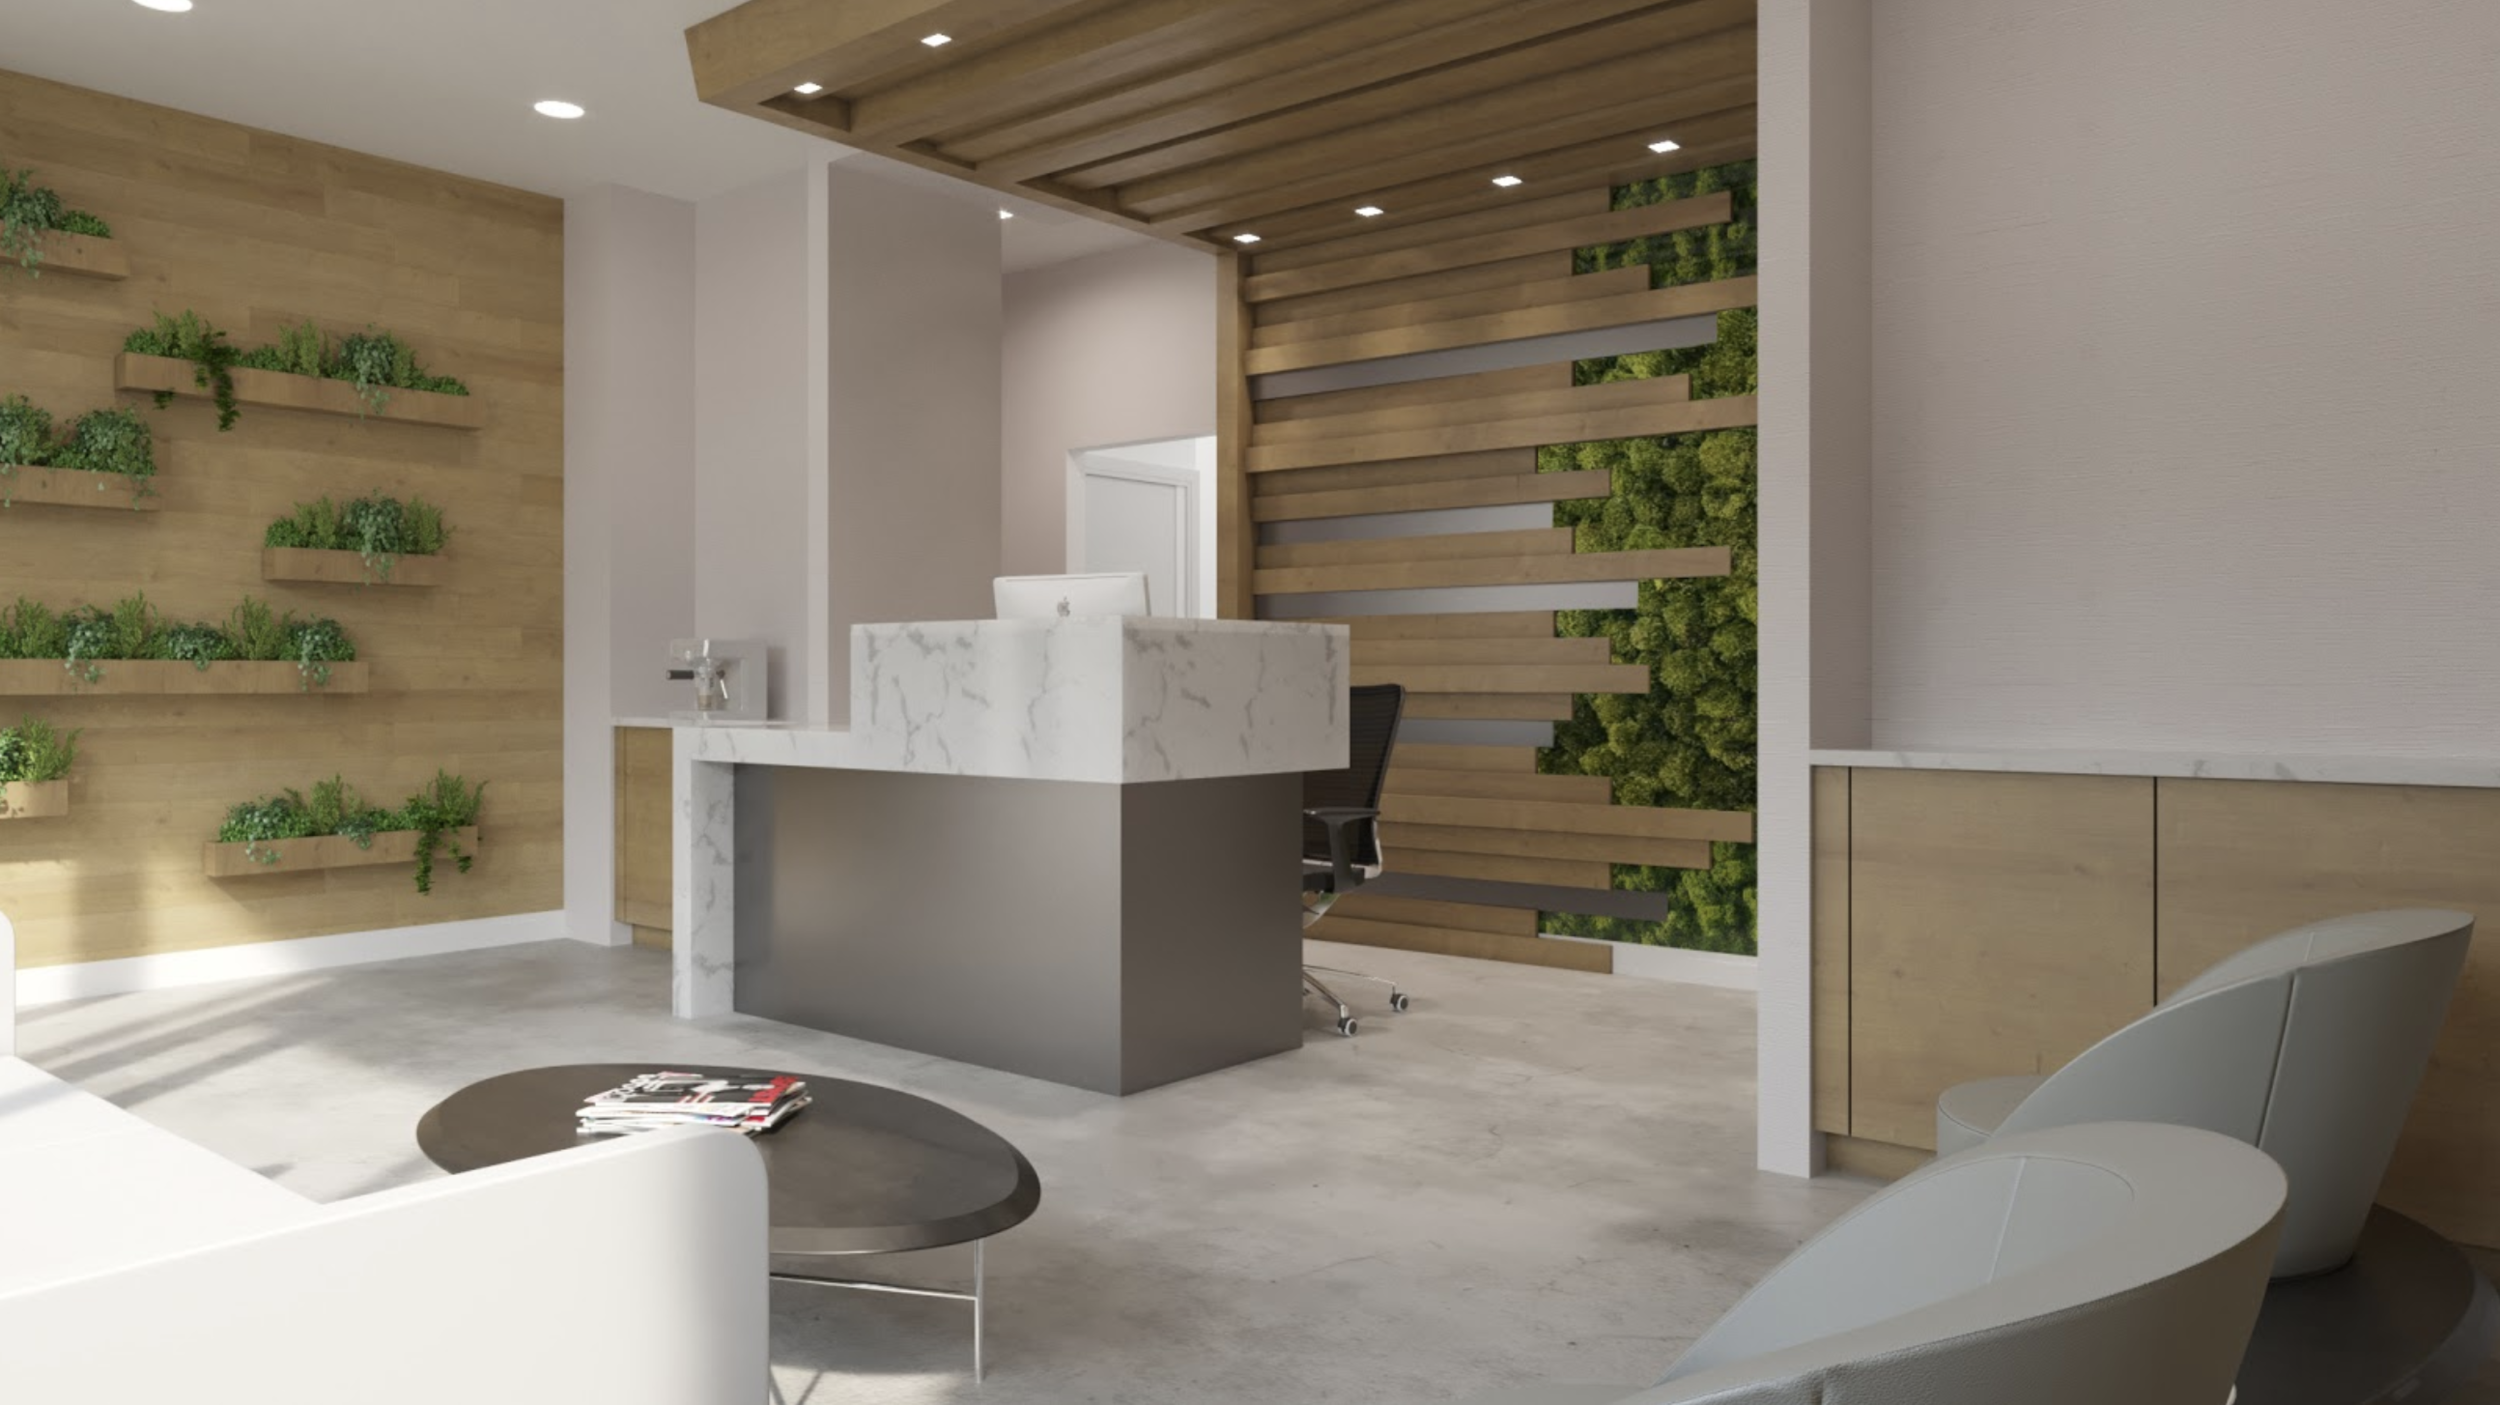 Downtown Dental Facilities - We like to display our philosophy in every aspect of our office. Our facilities play a big role…